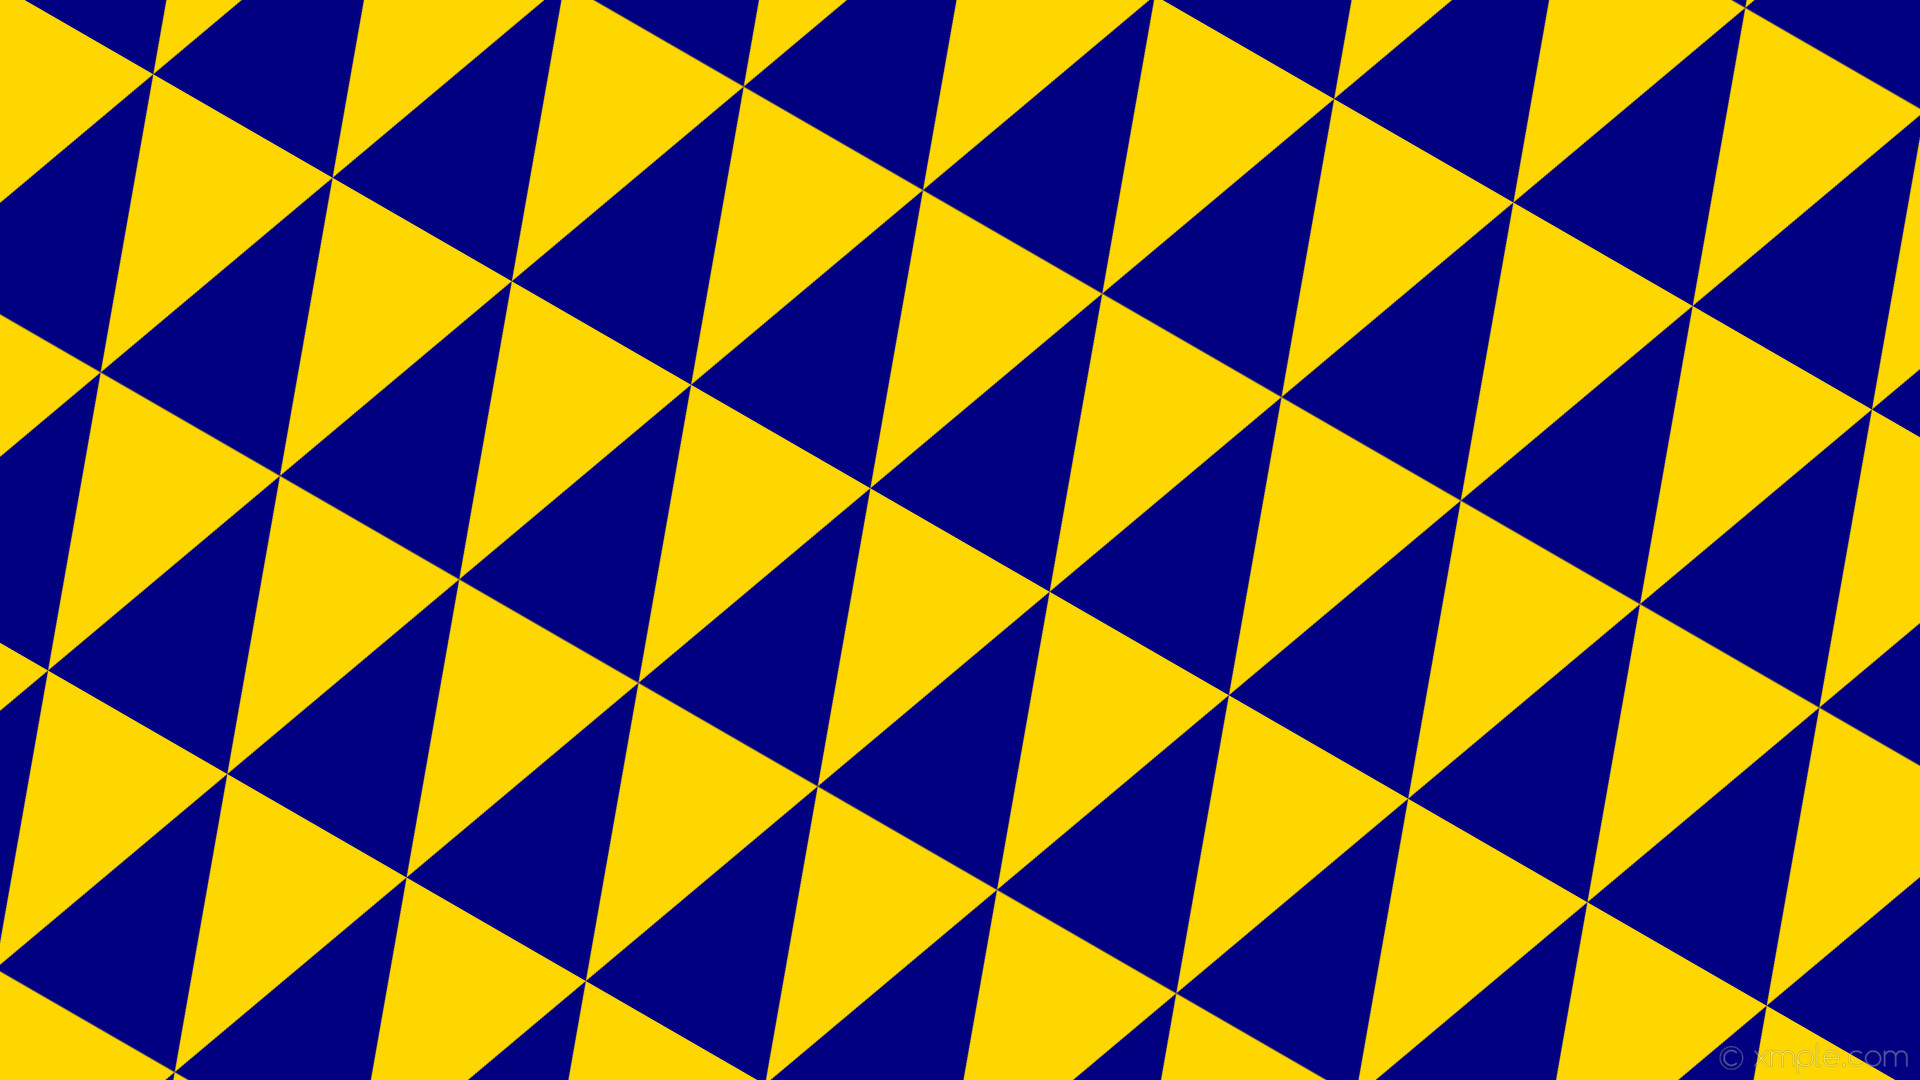 wallpaper blue yellow triangle gold navy #ffd700 #000080 330° 207px 569px